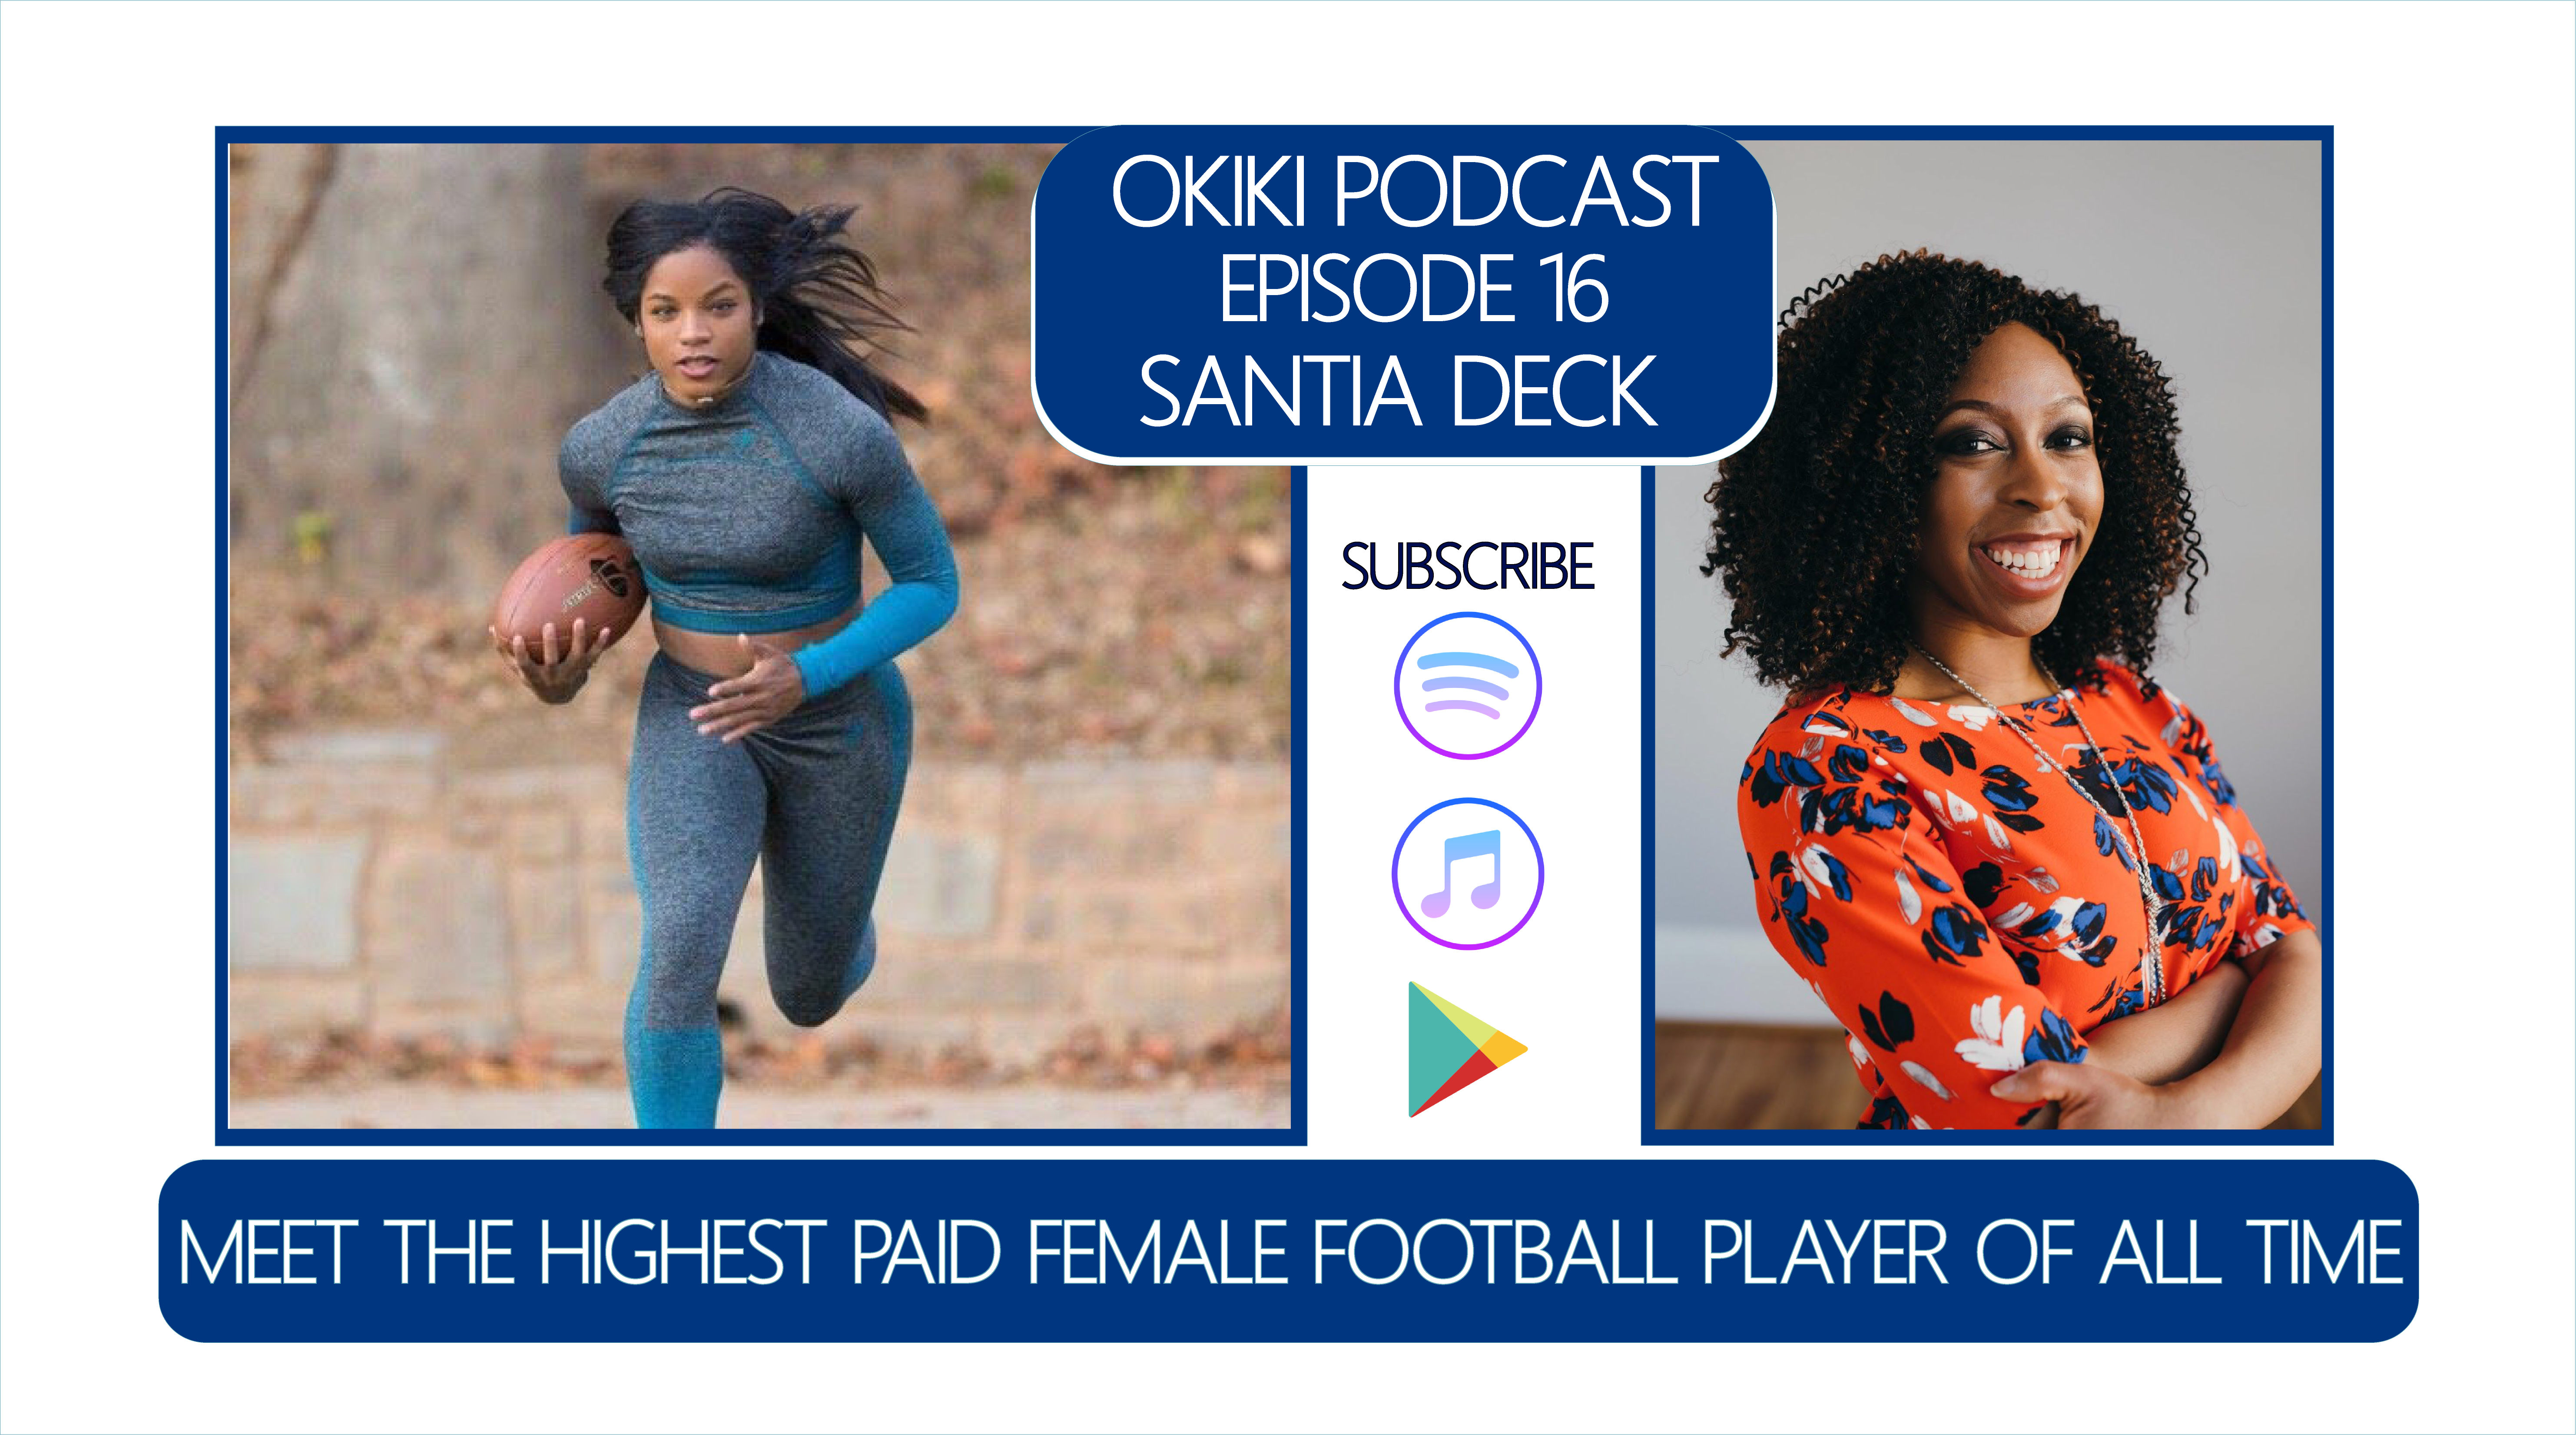 Meet The Highest Paid Female Football Player In History Santia